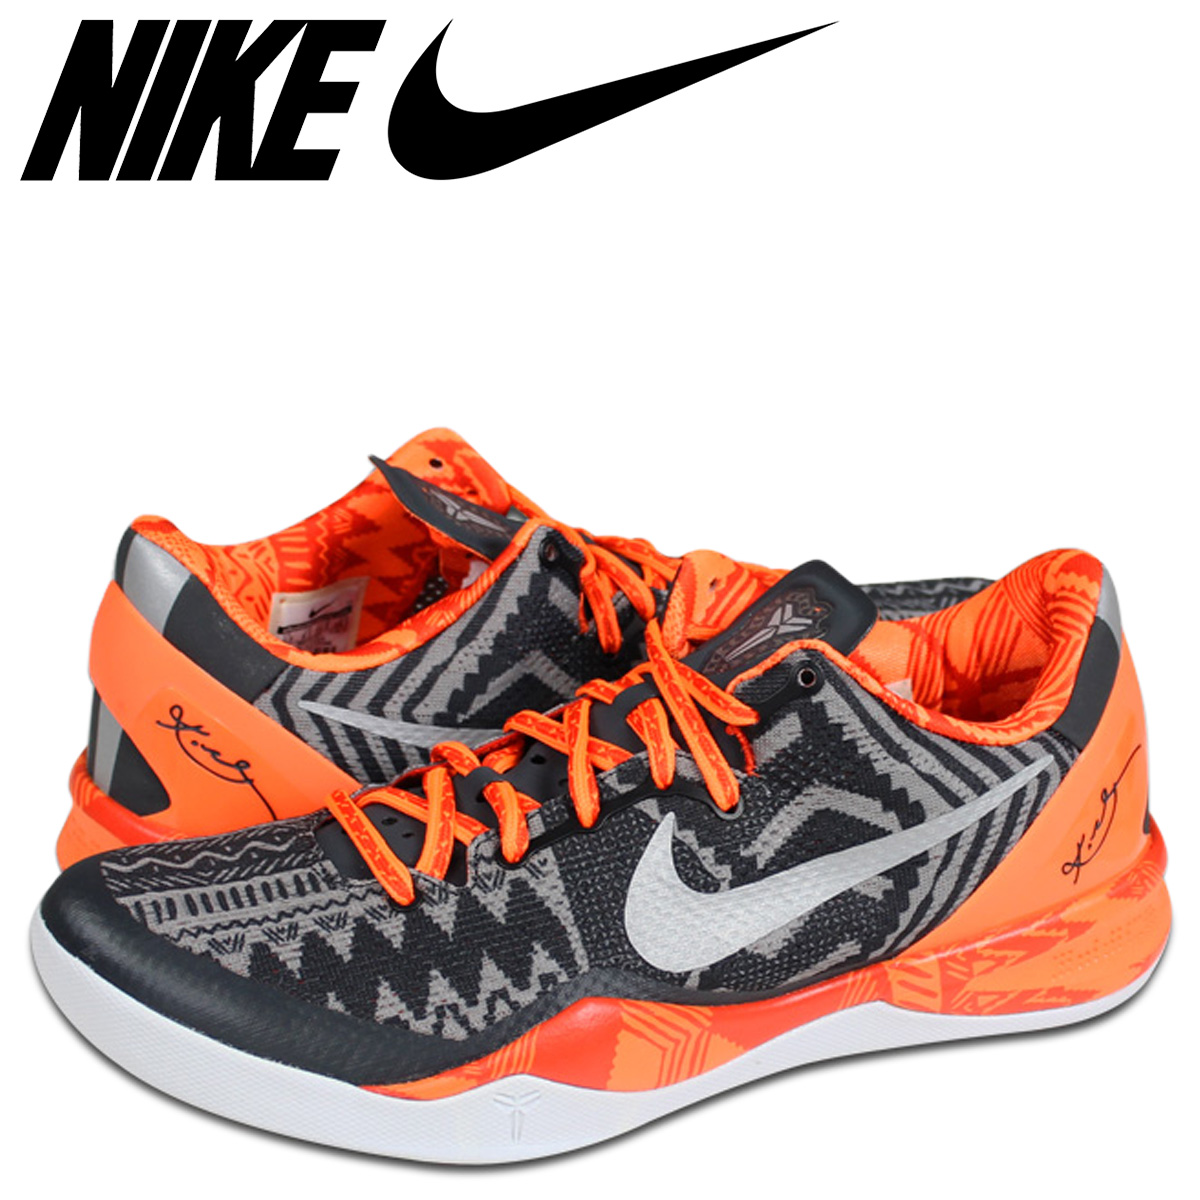 official photos fc936 50ed0 ・Kobe Bryant signature model to be the eighth generation. I make much of  accelerating play speed and put zoom (air) on a forehand ...